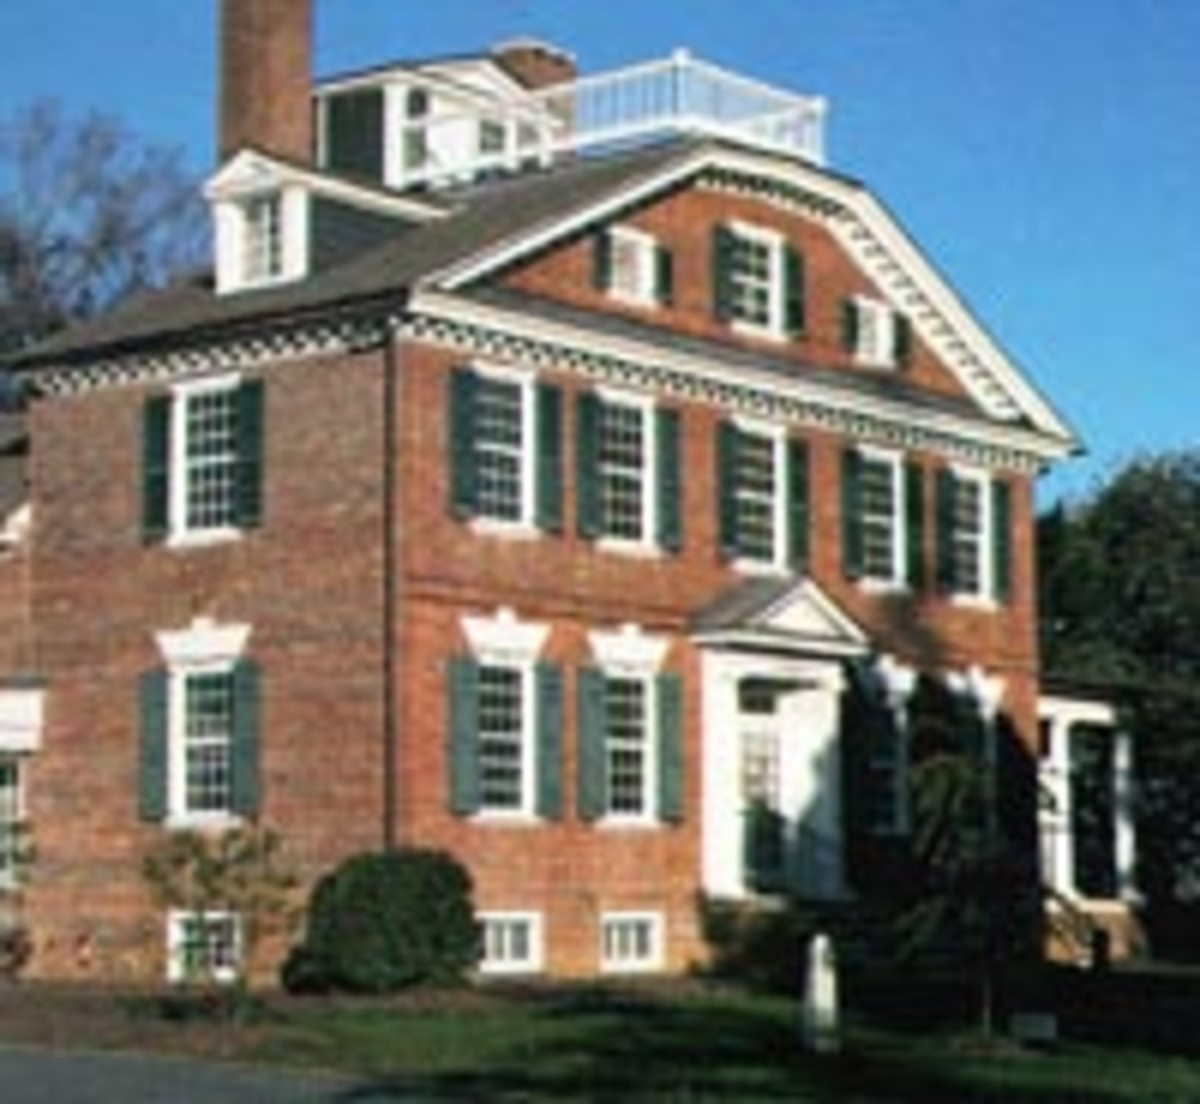 10 Spooky or Haunted Places in Delaware